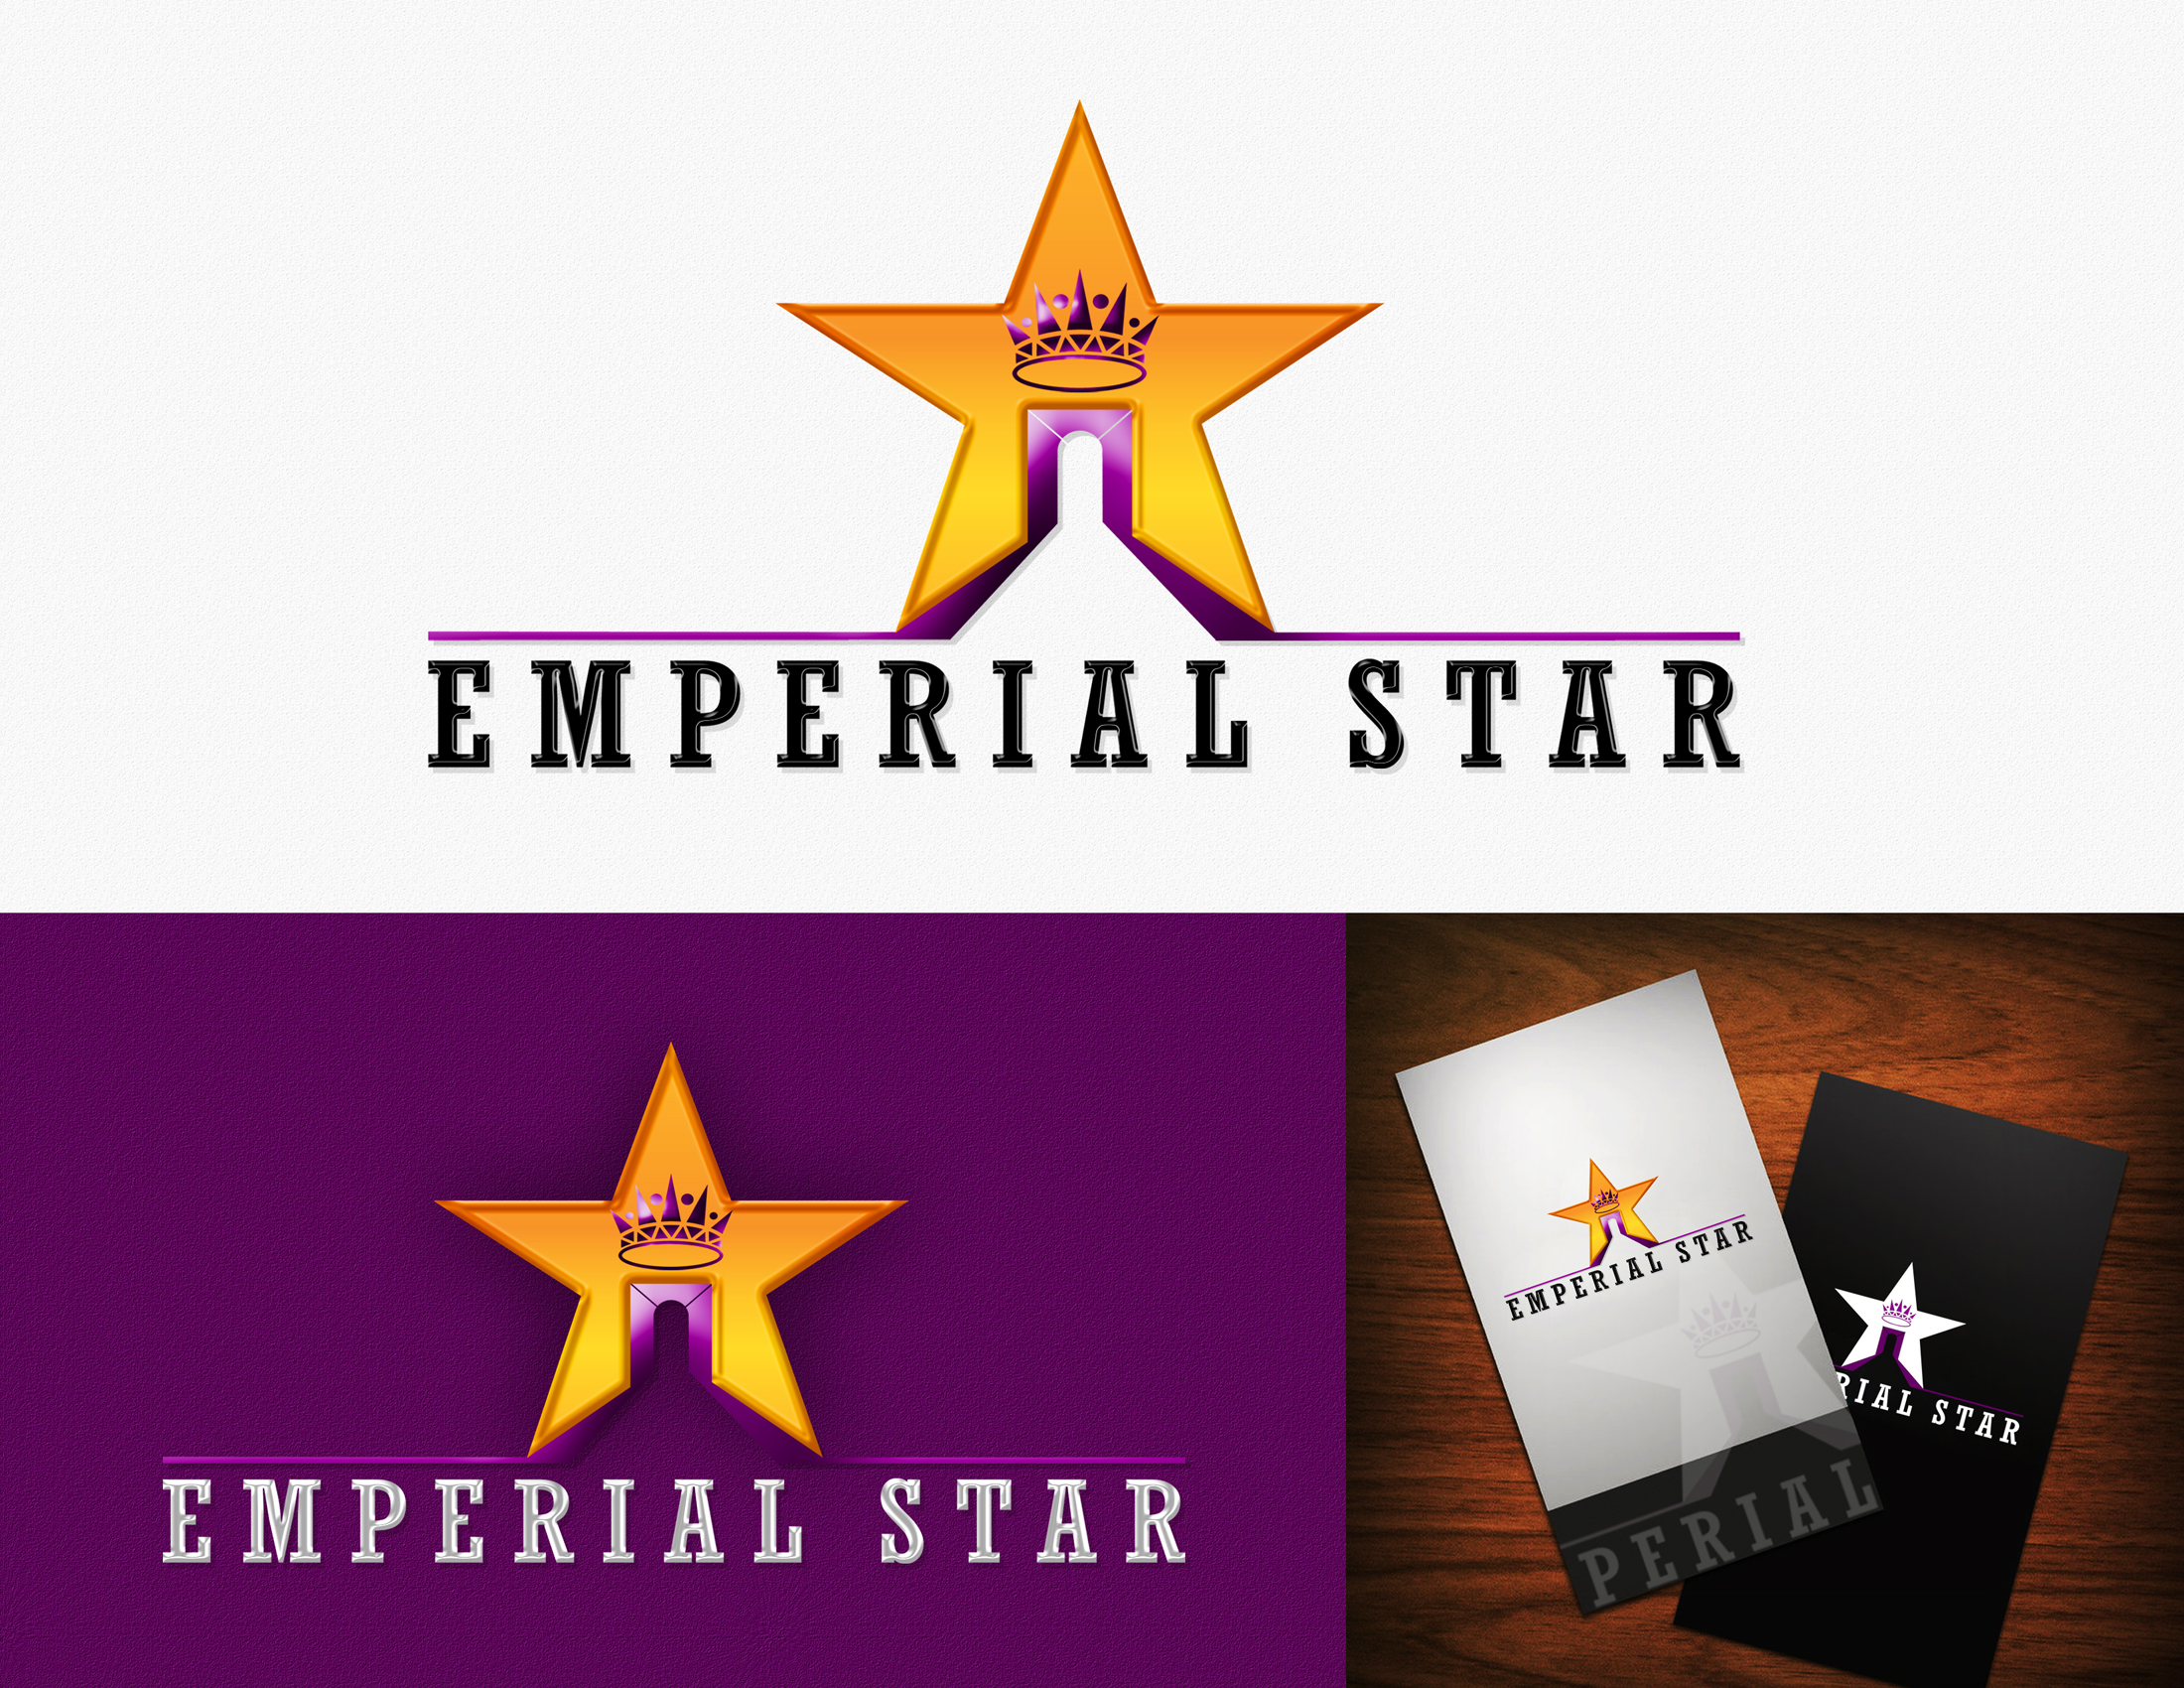 Logo Design by Private User - Entry No. 119 in the Logo Design Contest Emperial Star Logo Design.